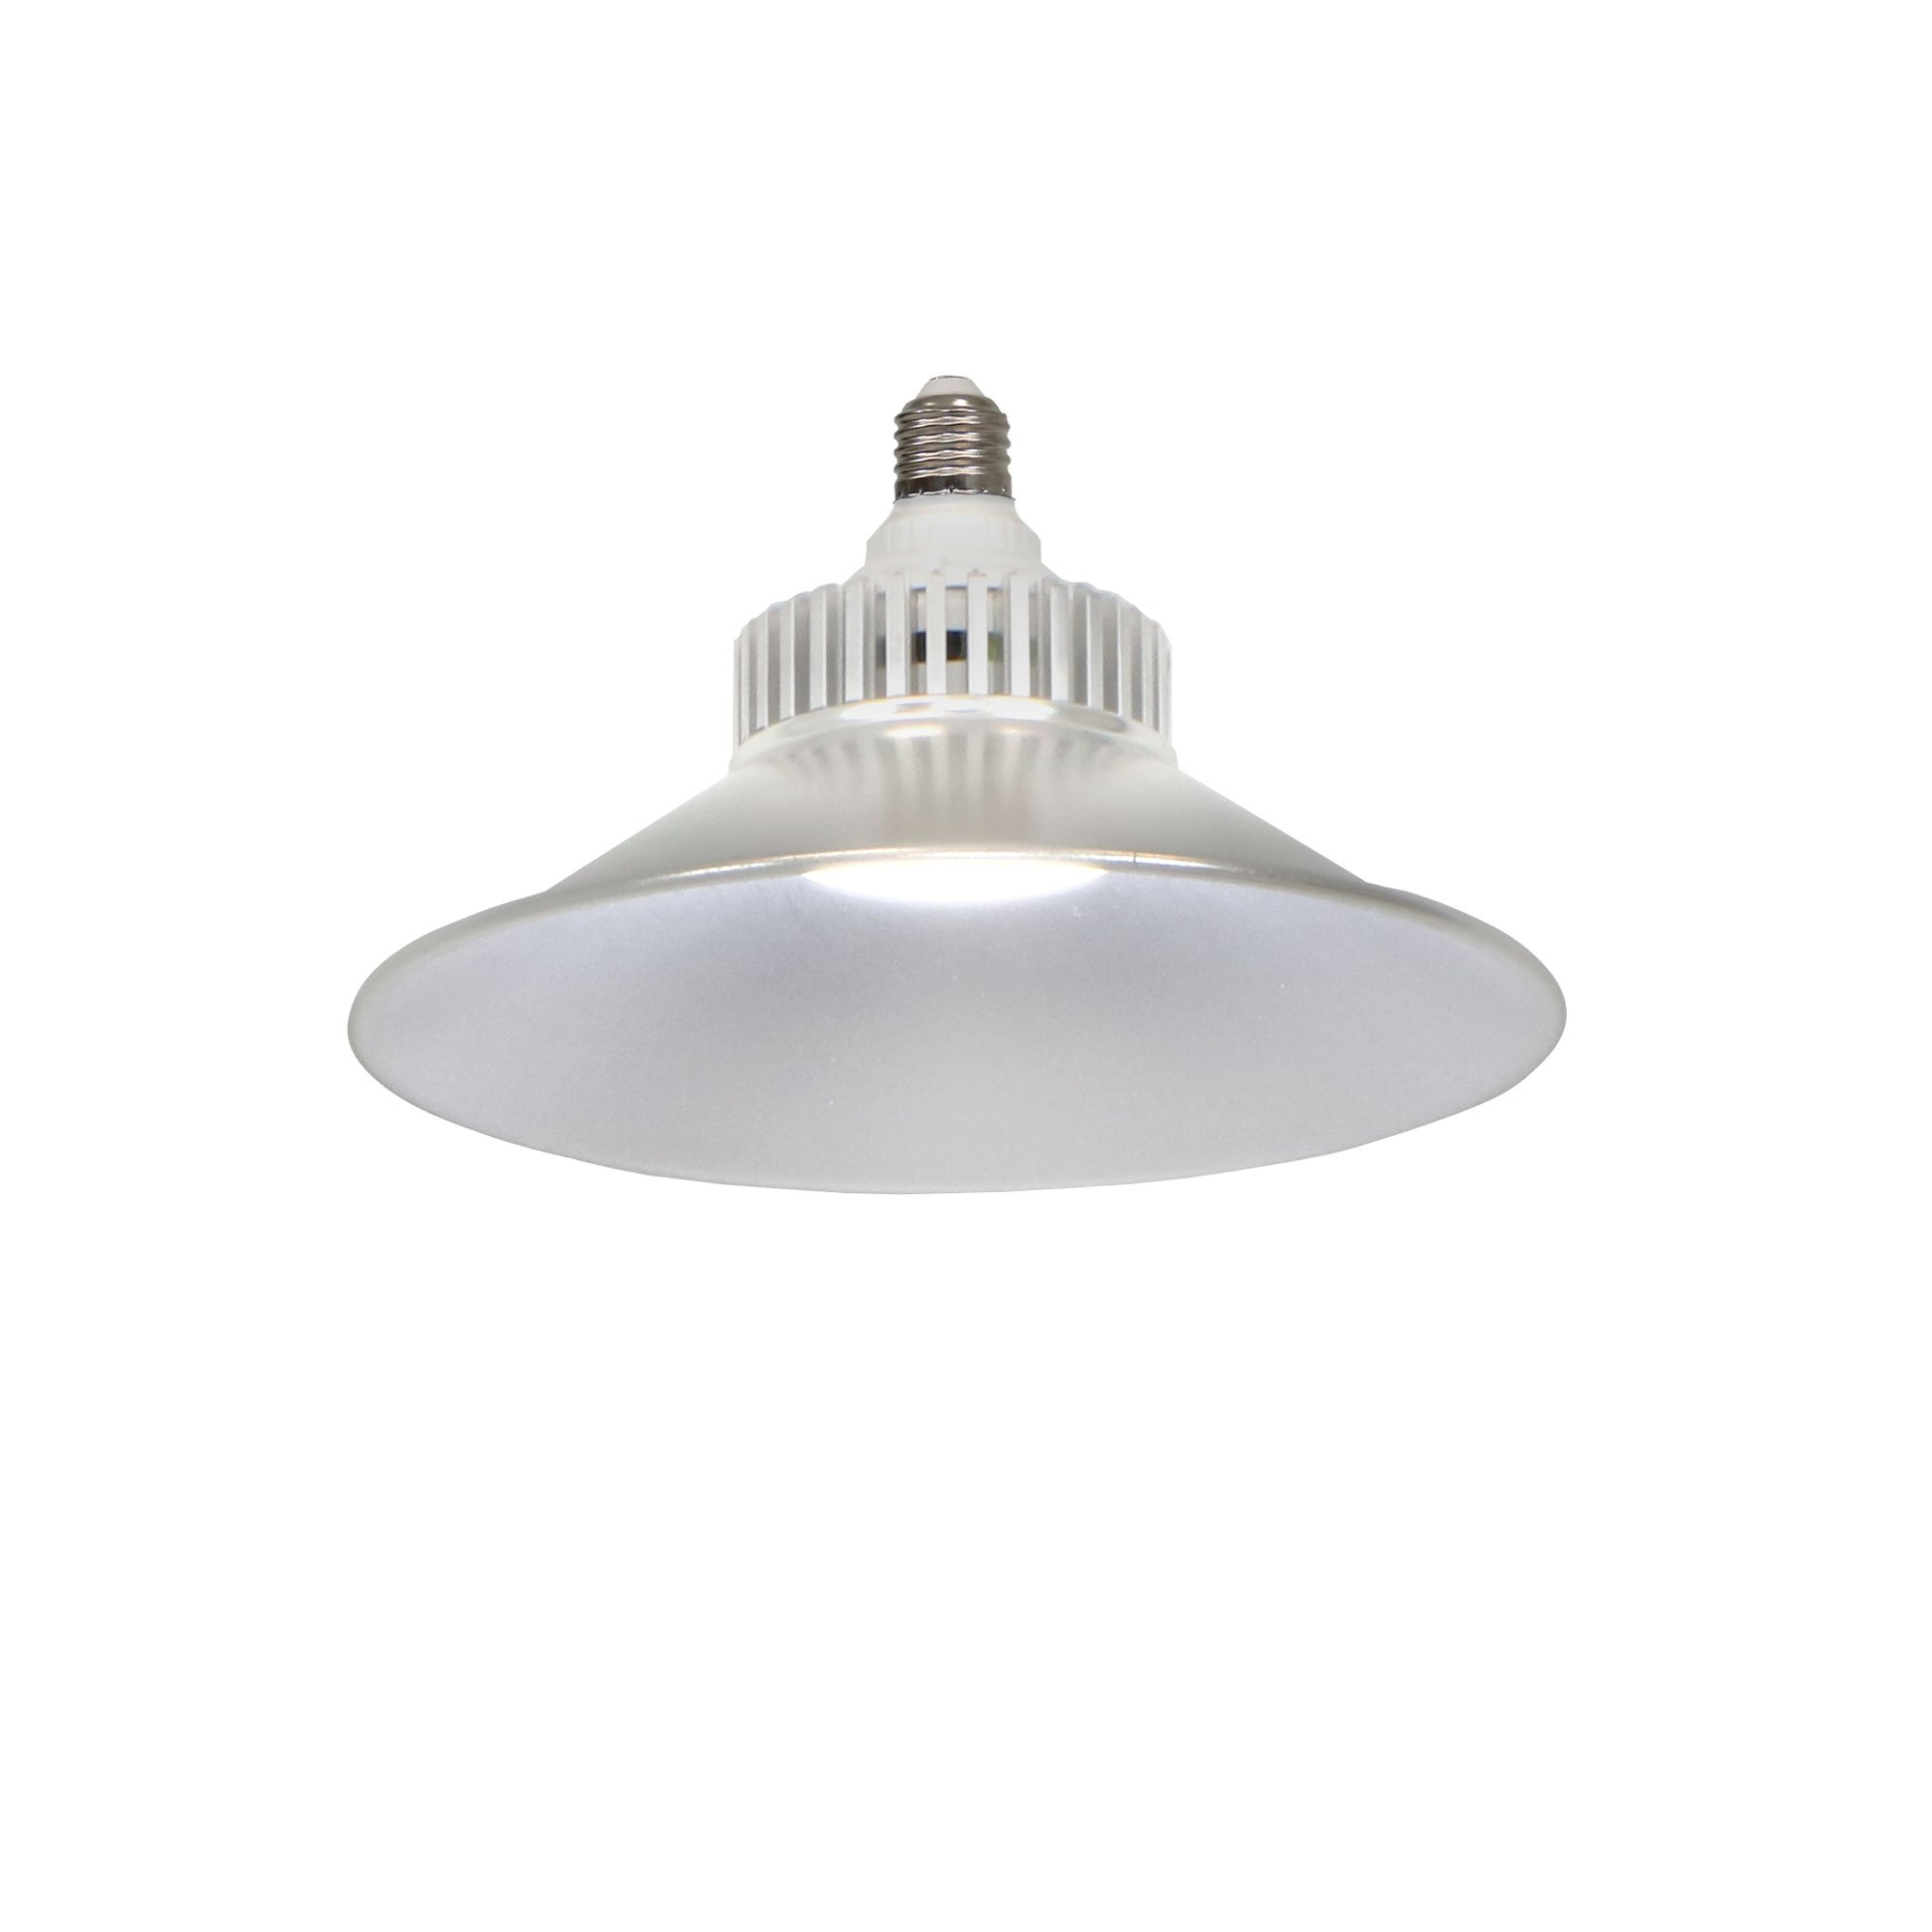 ATM-LED 20W Energy-Efficient 6000K Daylight LED Replacement Utility Bulb with Aluminum Reflector, 2200 Lumens, Garage, Basement, Workshop or Shed, Single Light